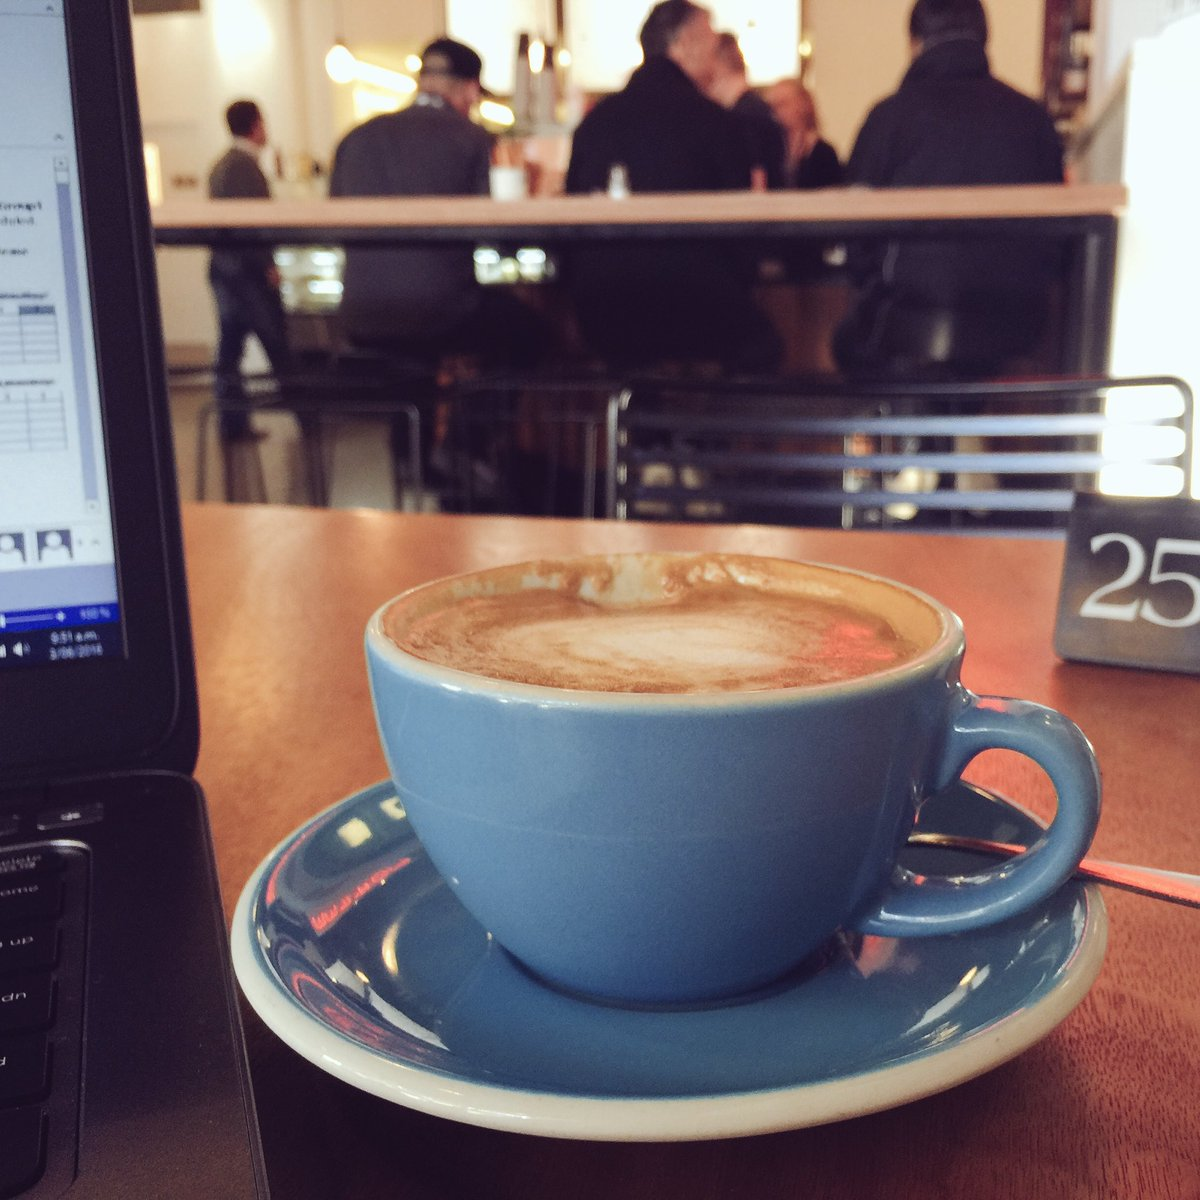 Today, working from home means working from one of my fav cafes in #lovethetron, Mr Miltons. https://t.co/Py1HfBm57c